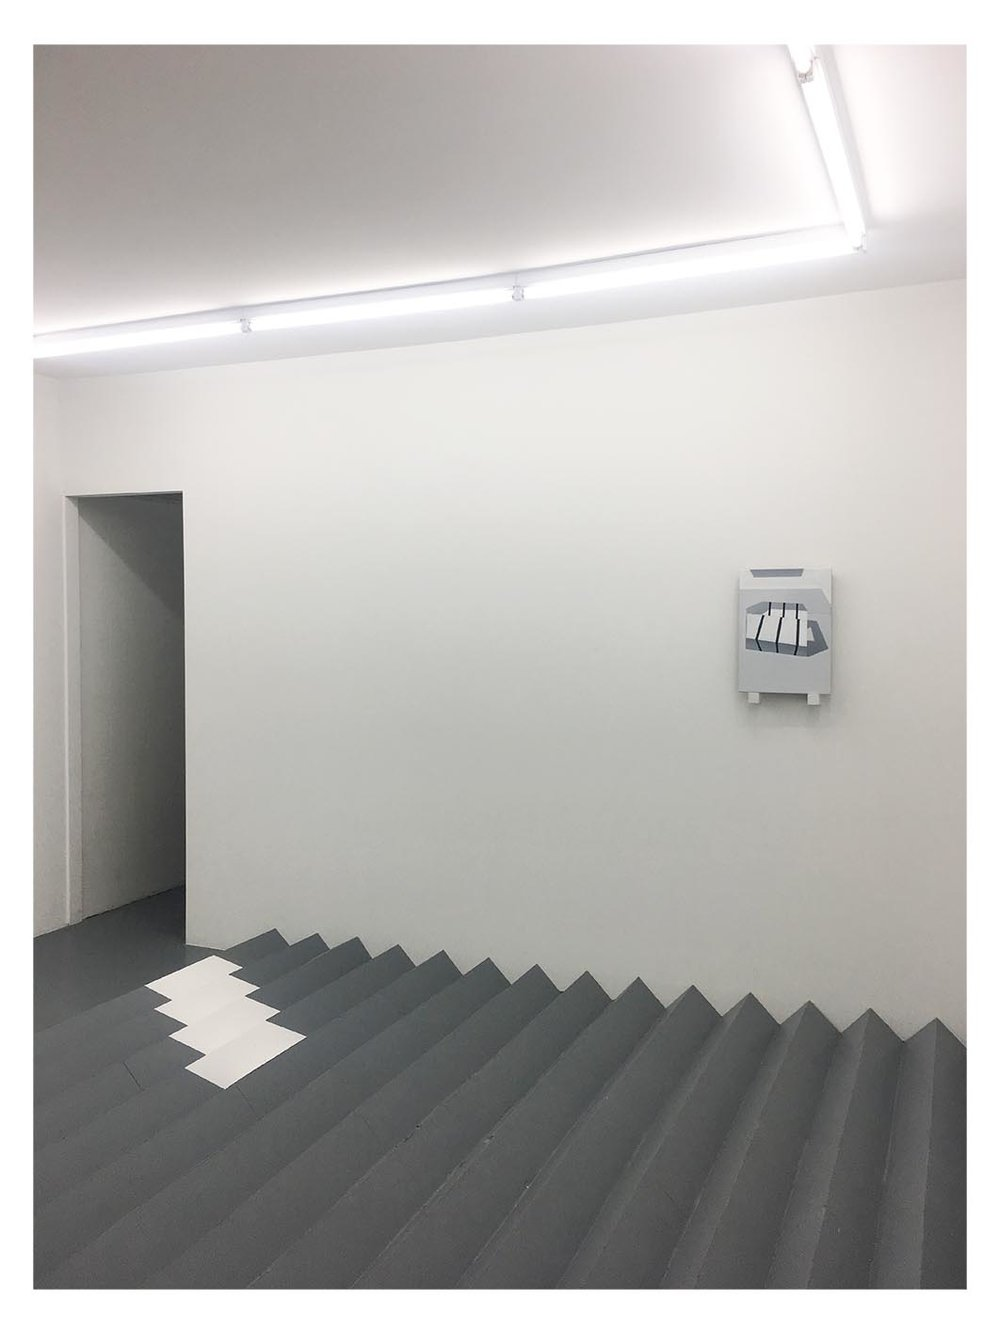 """Wall - """"Divergent""""  Oil on linen, pine, synthetic polymer  50 x 36 x 6cm  Floor - """"Proliferated Cubes""""  Plywood, synthetic polymer  3660 x 5200cm x 17cm  Five Walls Projects May 16 -June 2 2018"""